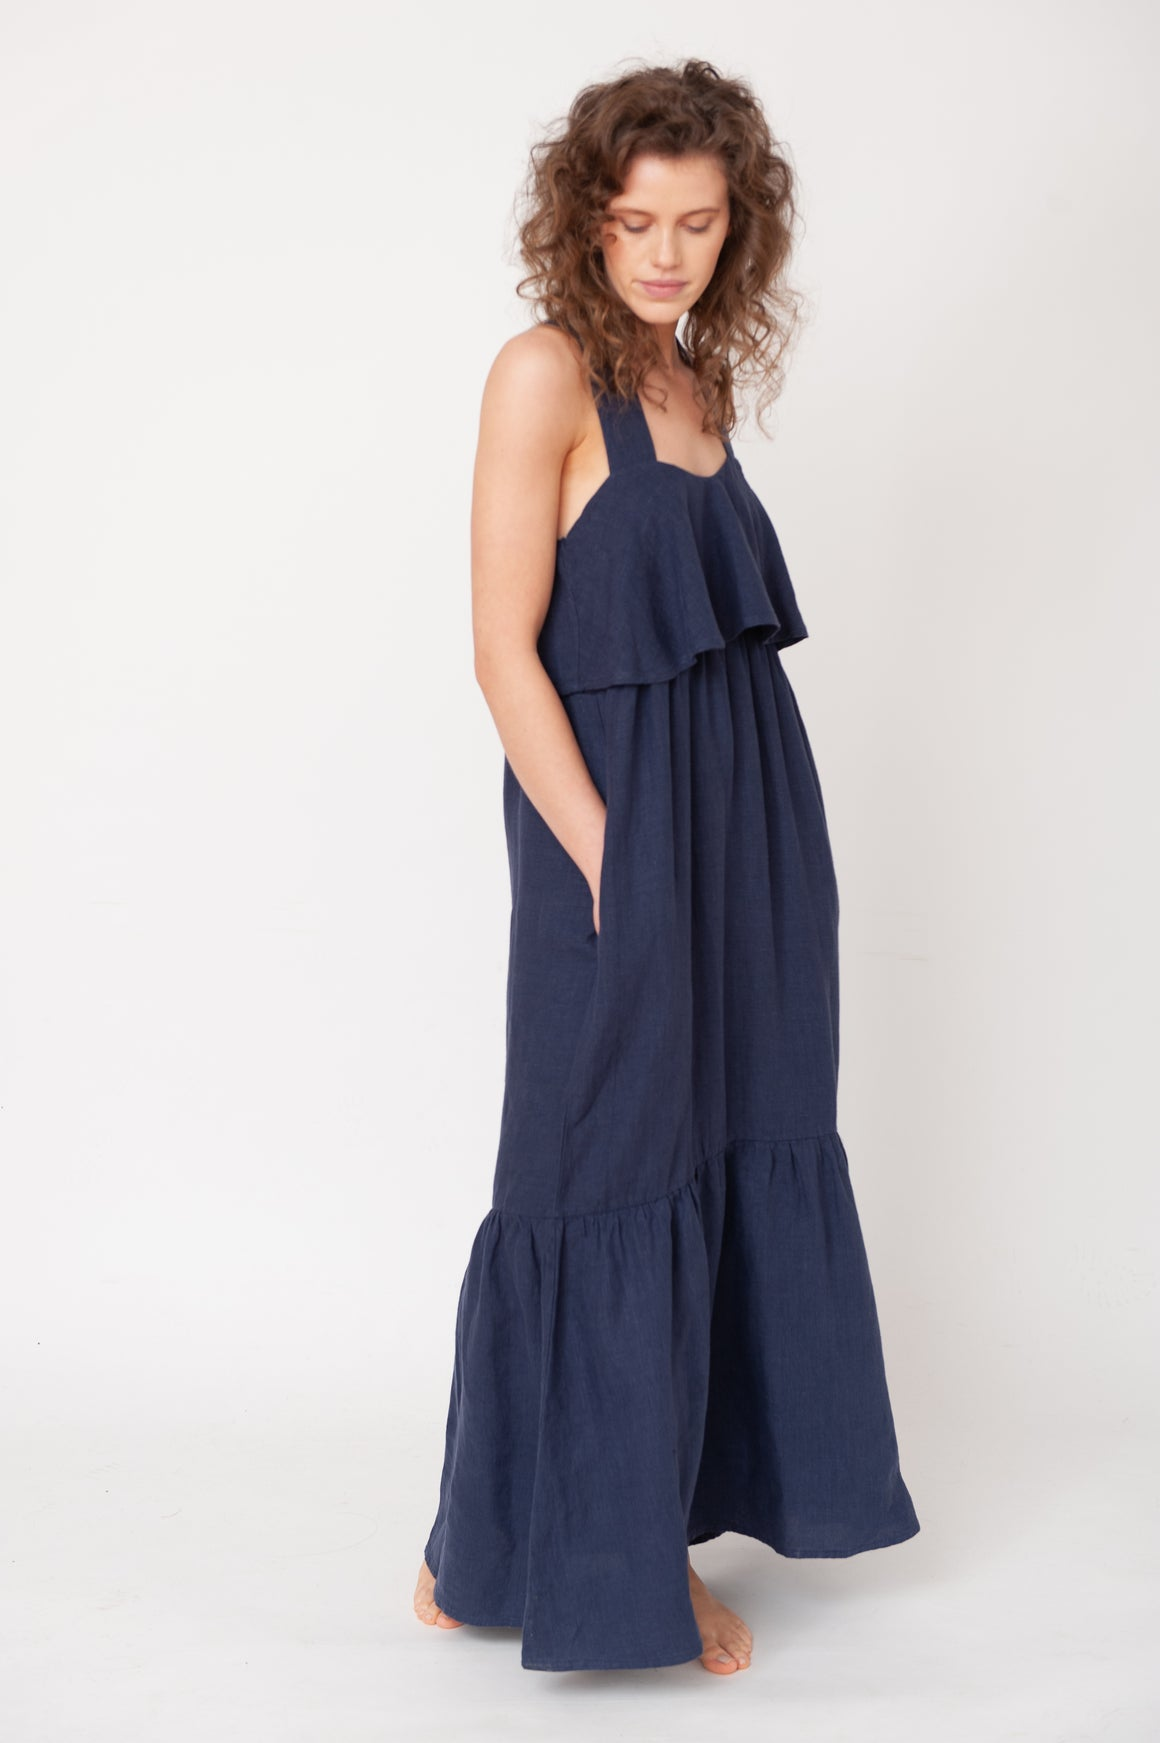 Arya-May Linen Dress - Midnight